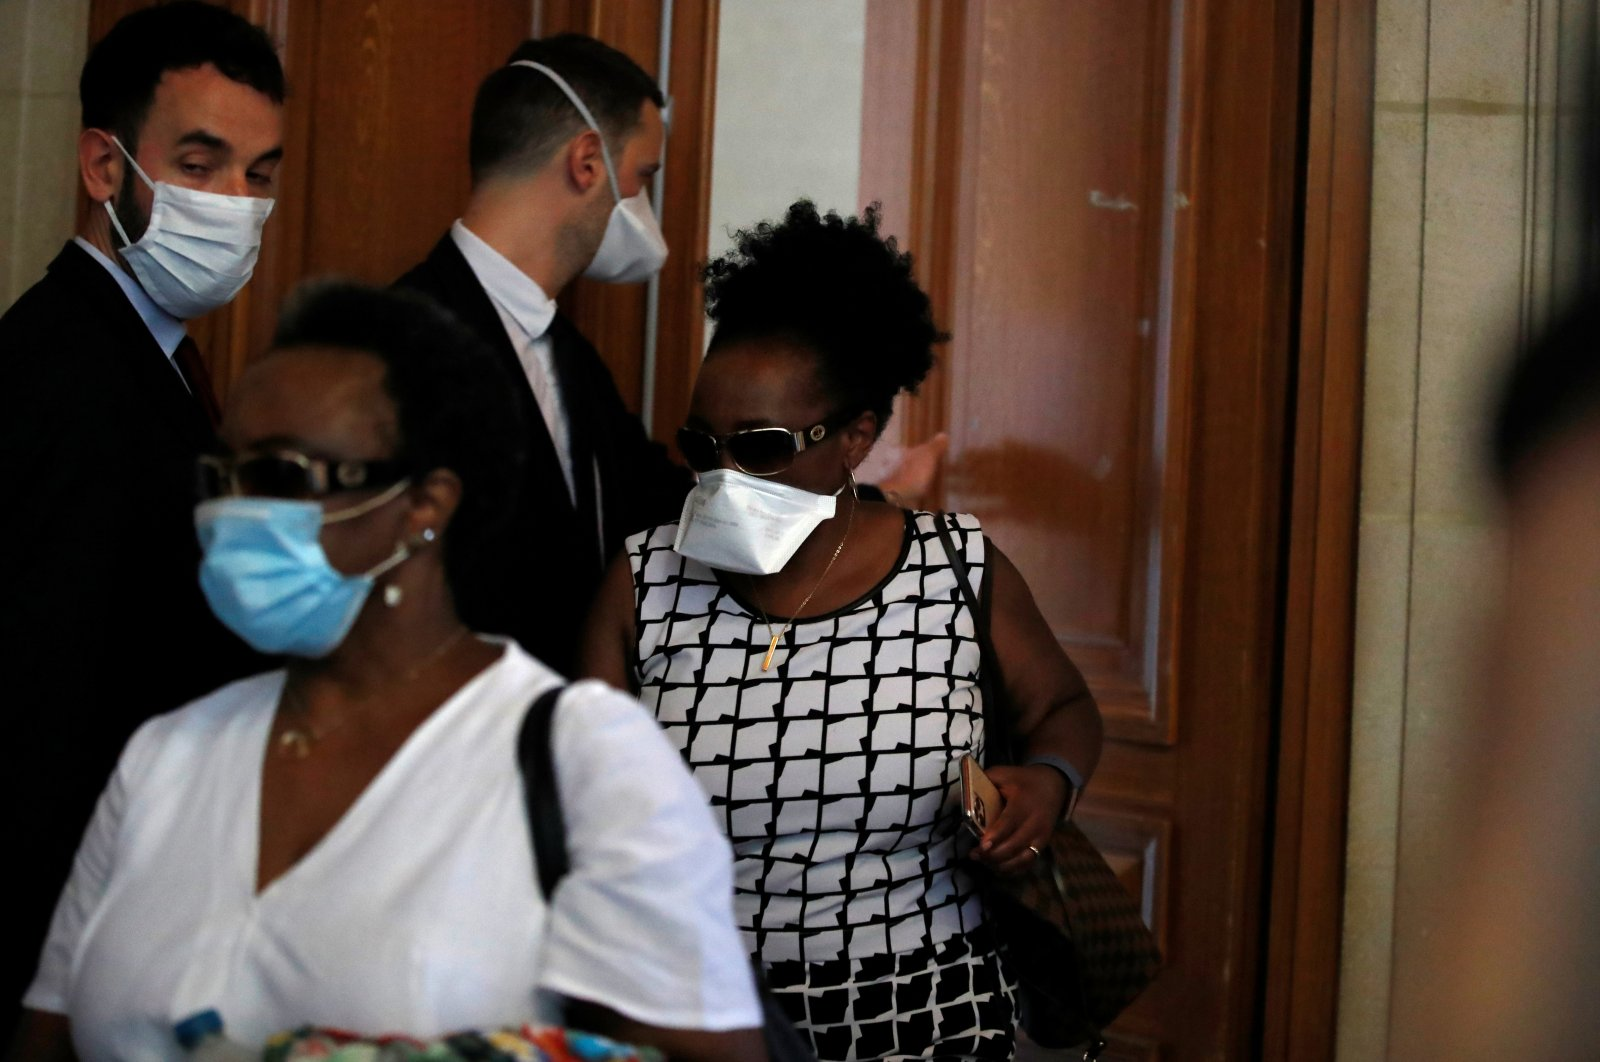 Relatives of Rwandan genocide suspect Felicien Kabuga arrive at the Paris courthouse before the initial extradition hearing for Felicien Kabuga in Paris, France, May 20, 2020. (Reuters Photo)